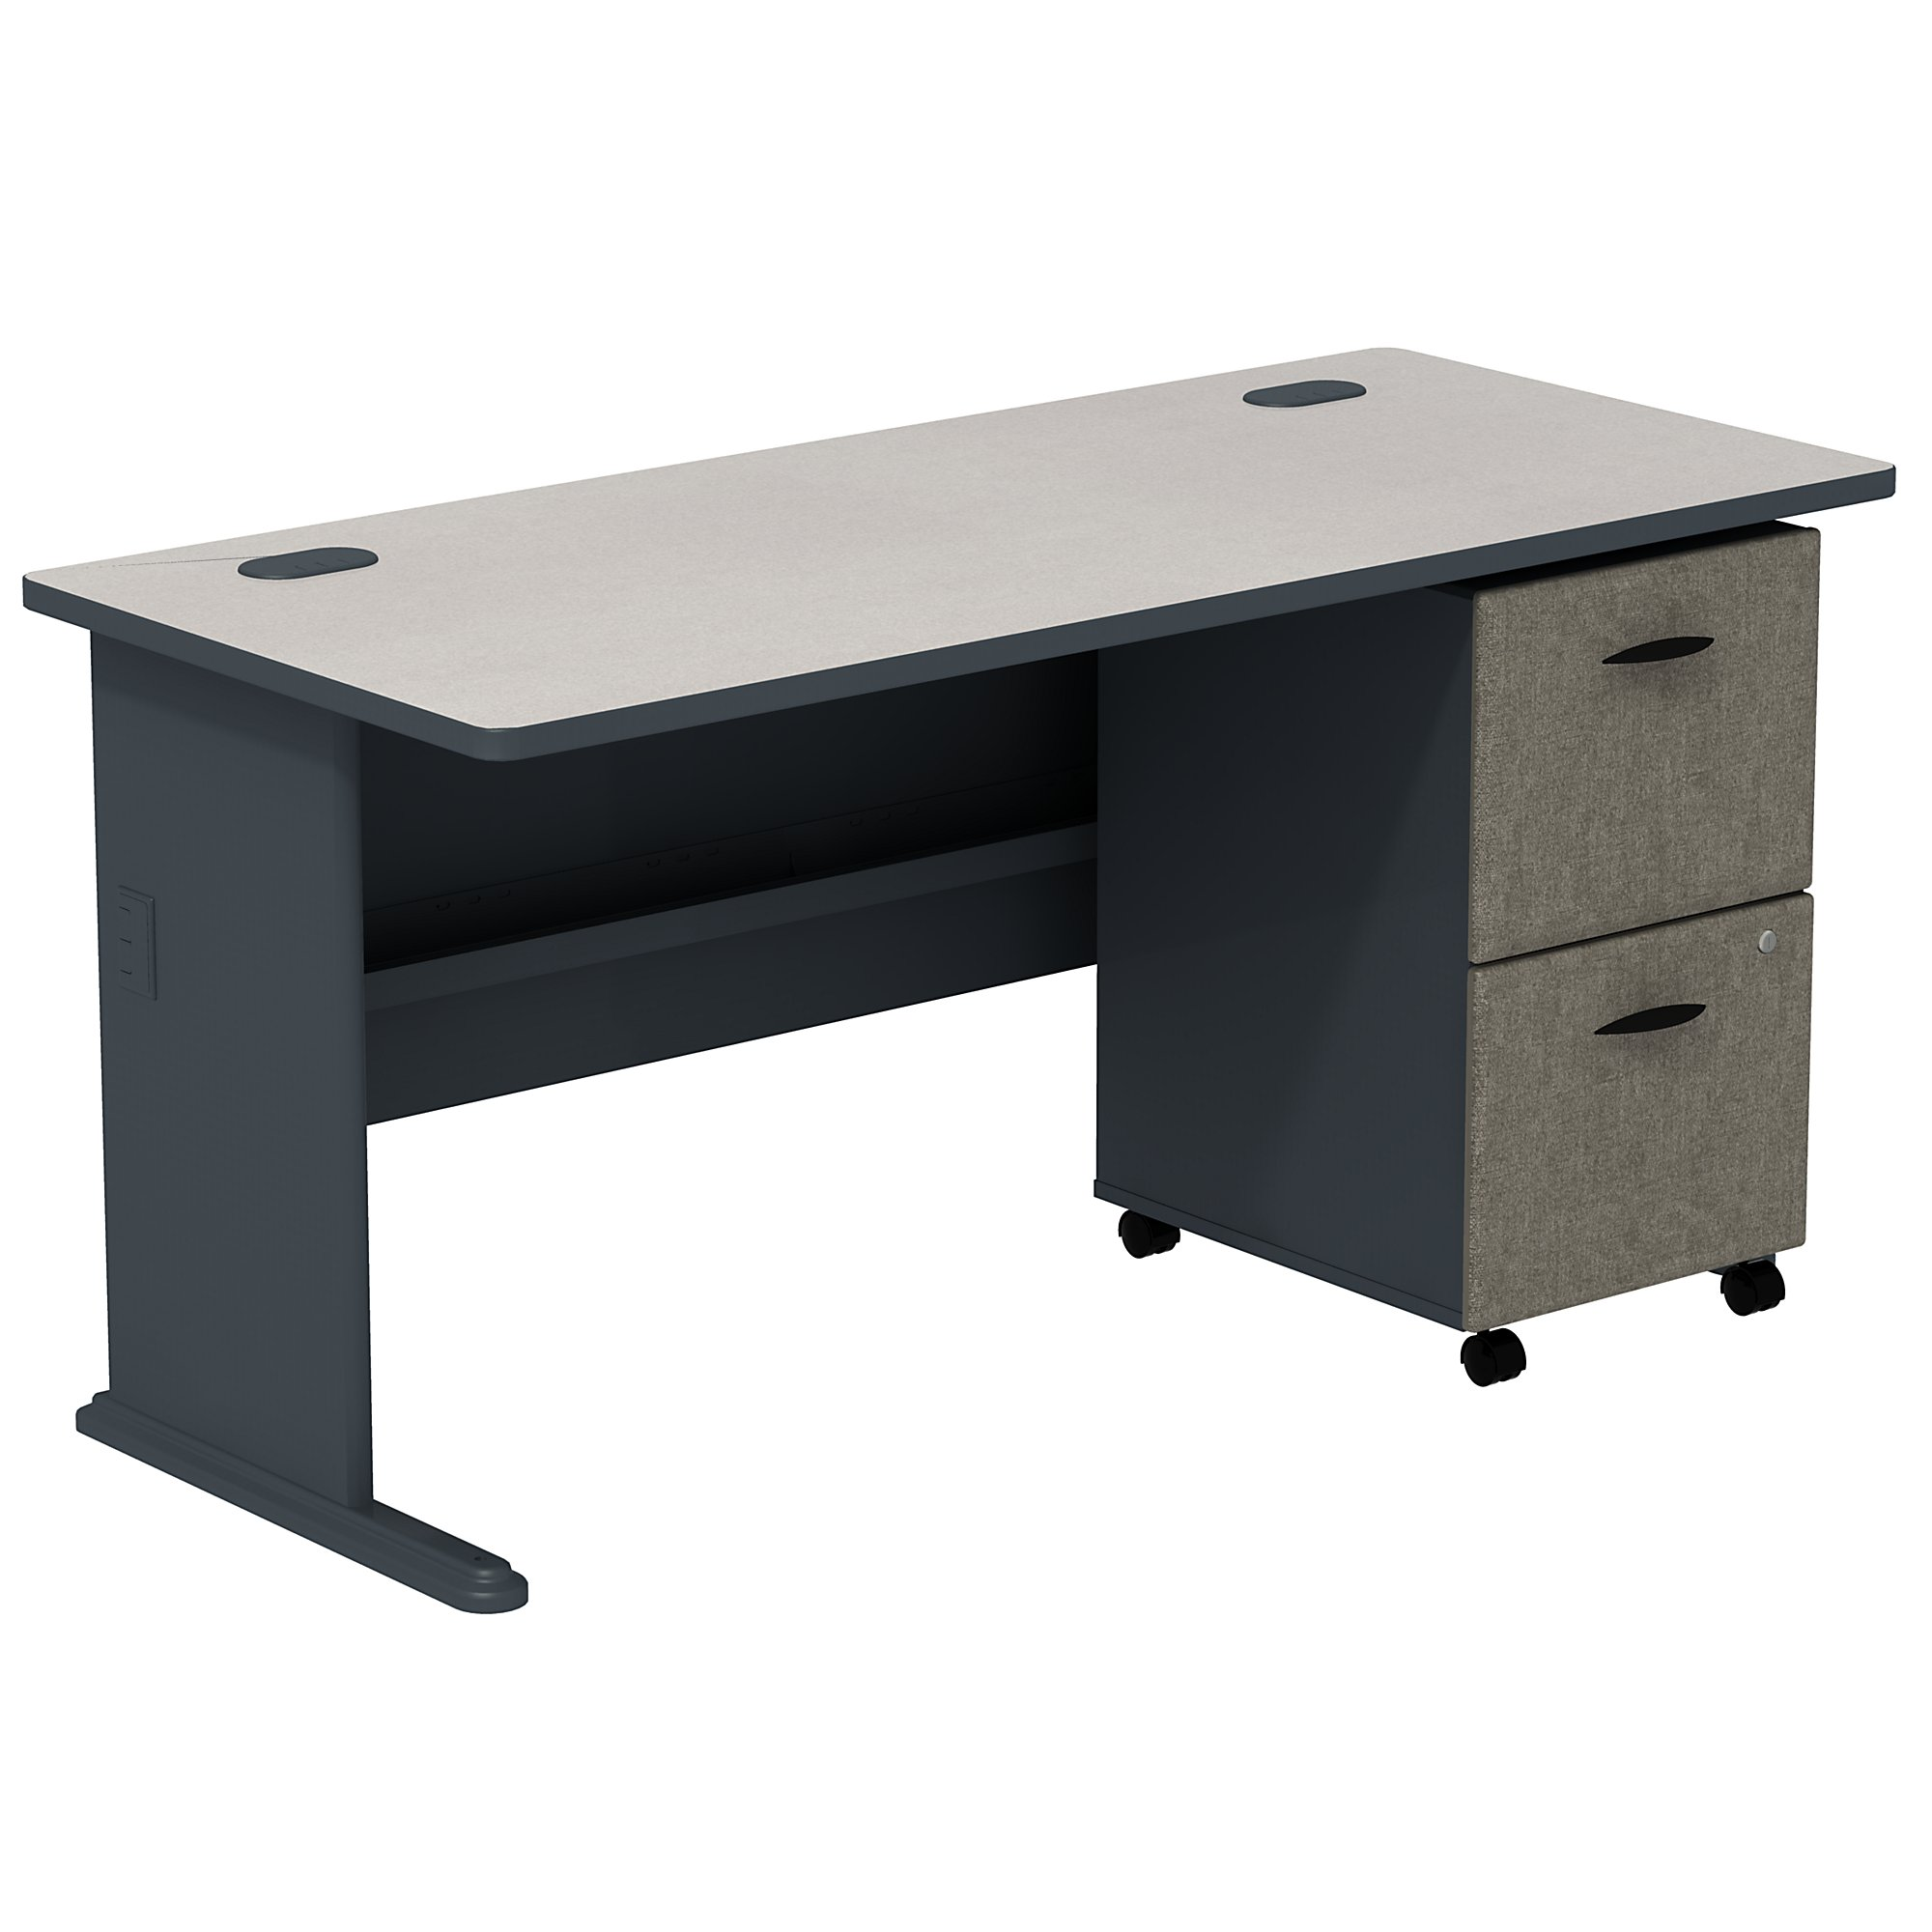 slate series a desk with mobile pedestal